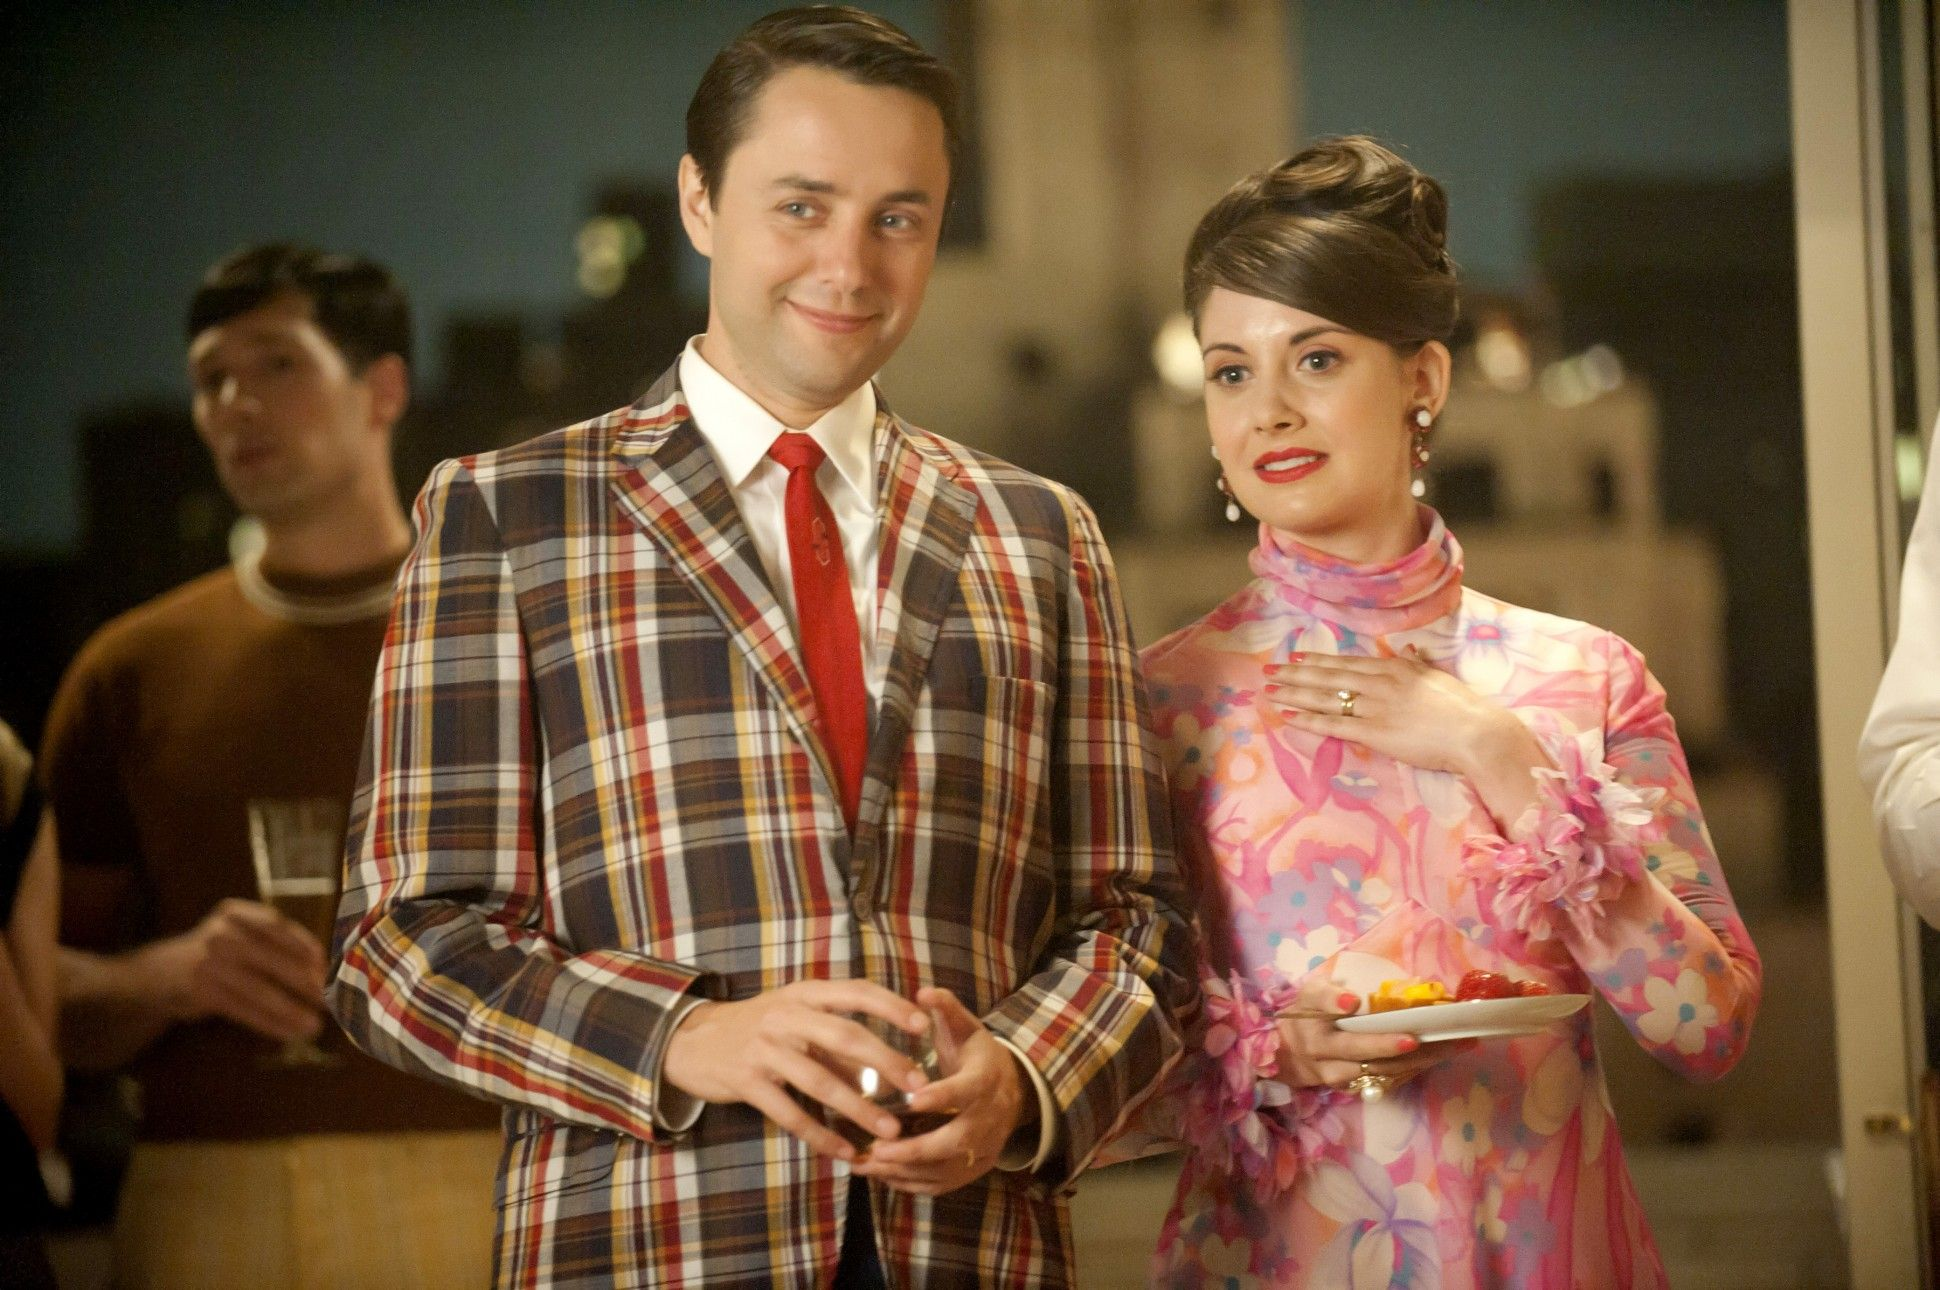 תוצאת תמונה עבור mad men costume | Tango | Pinterest